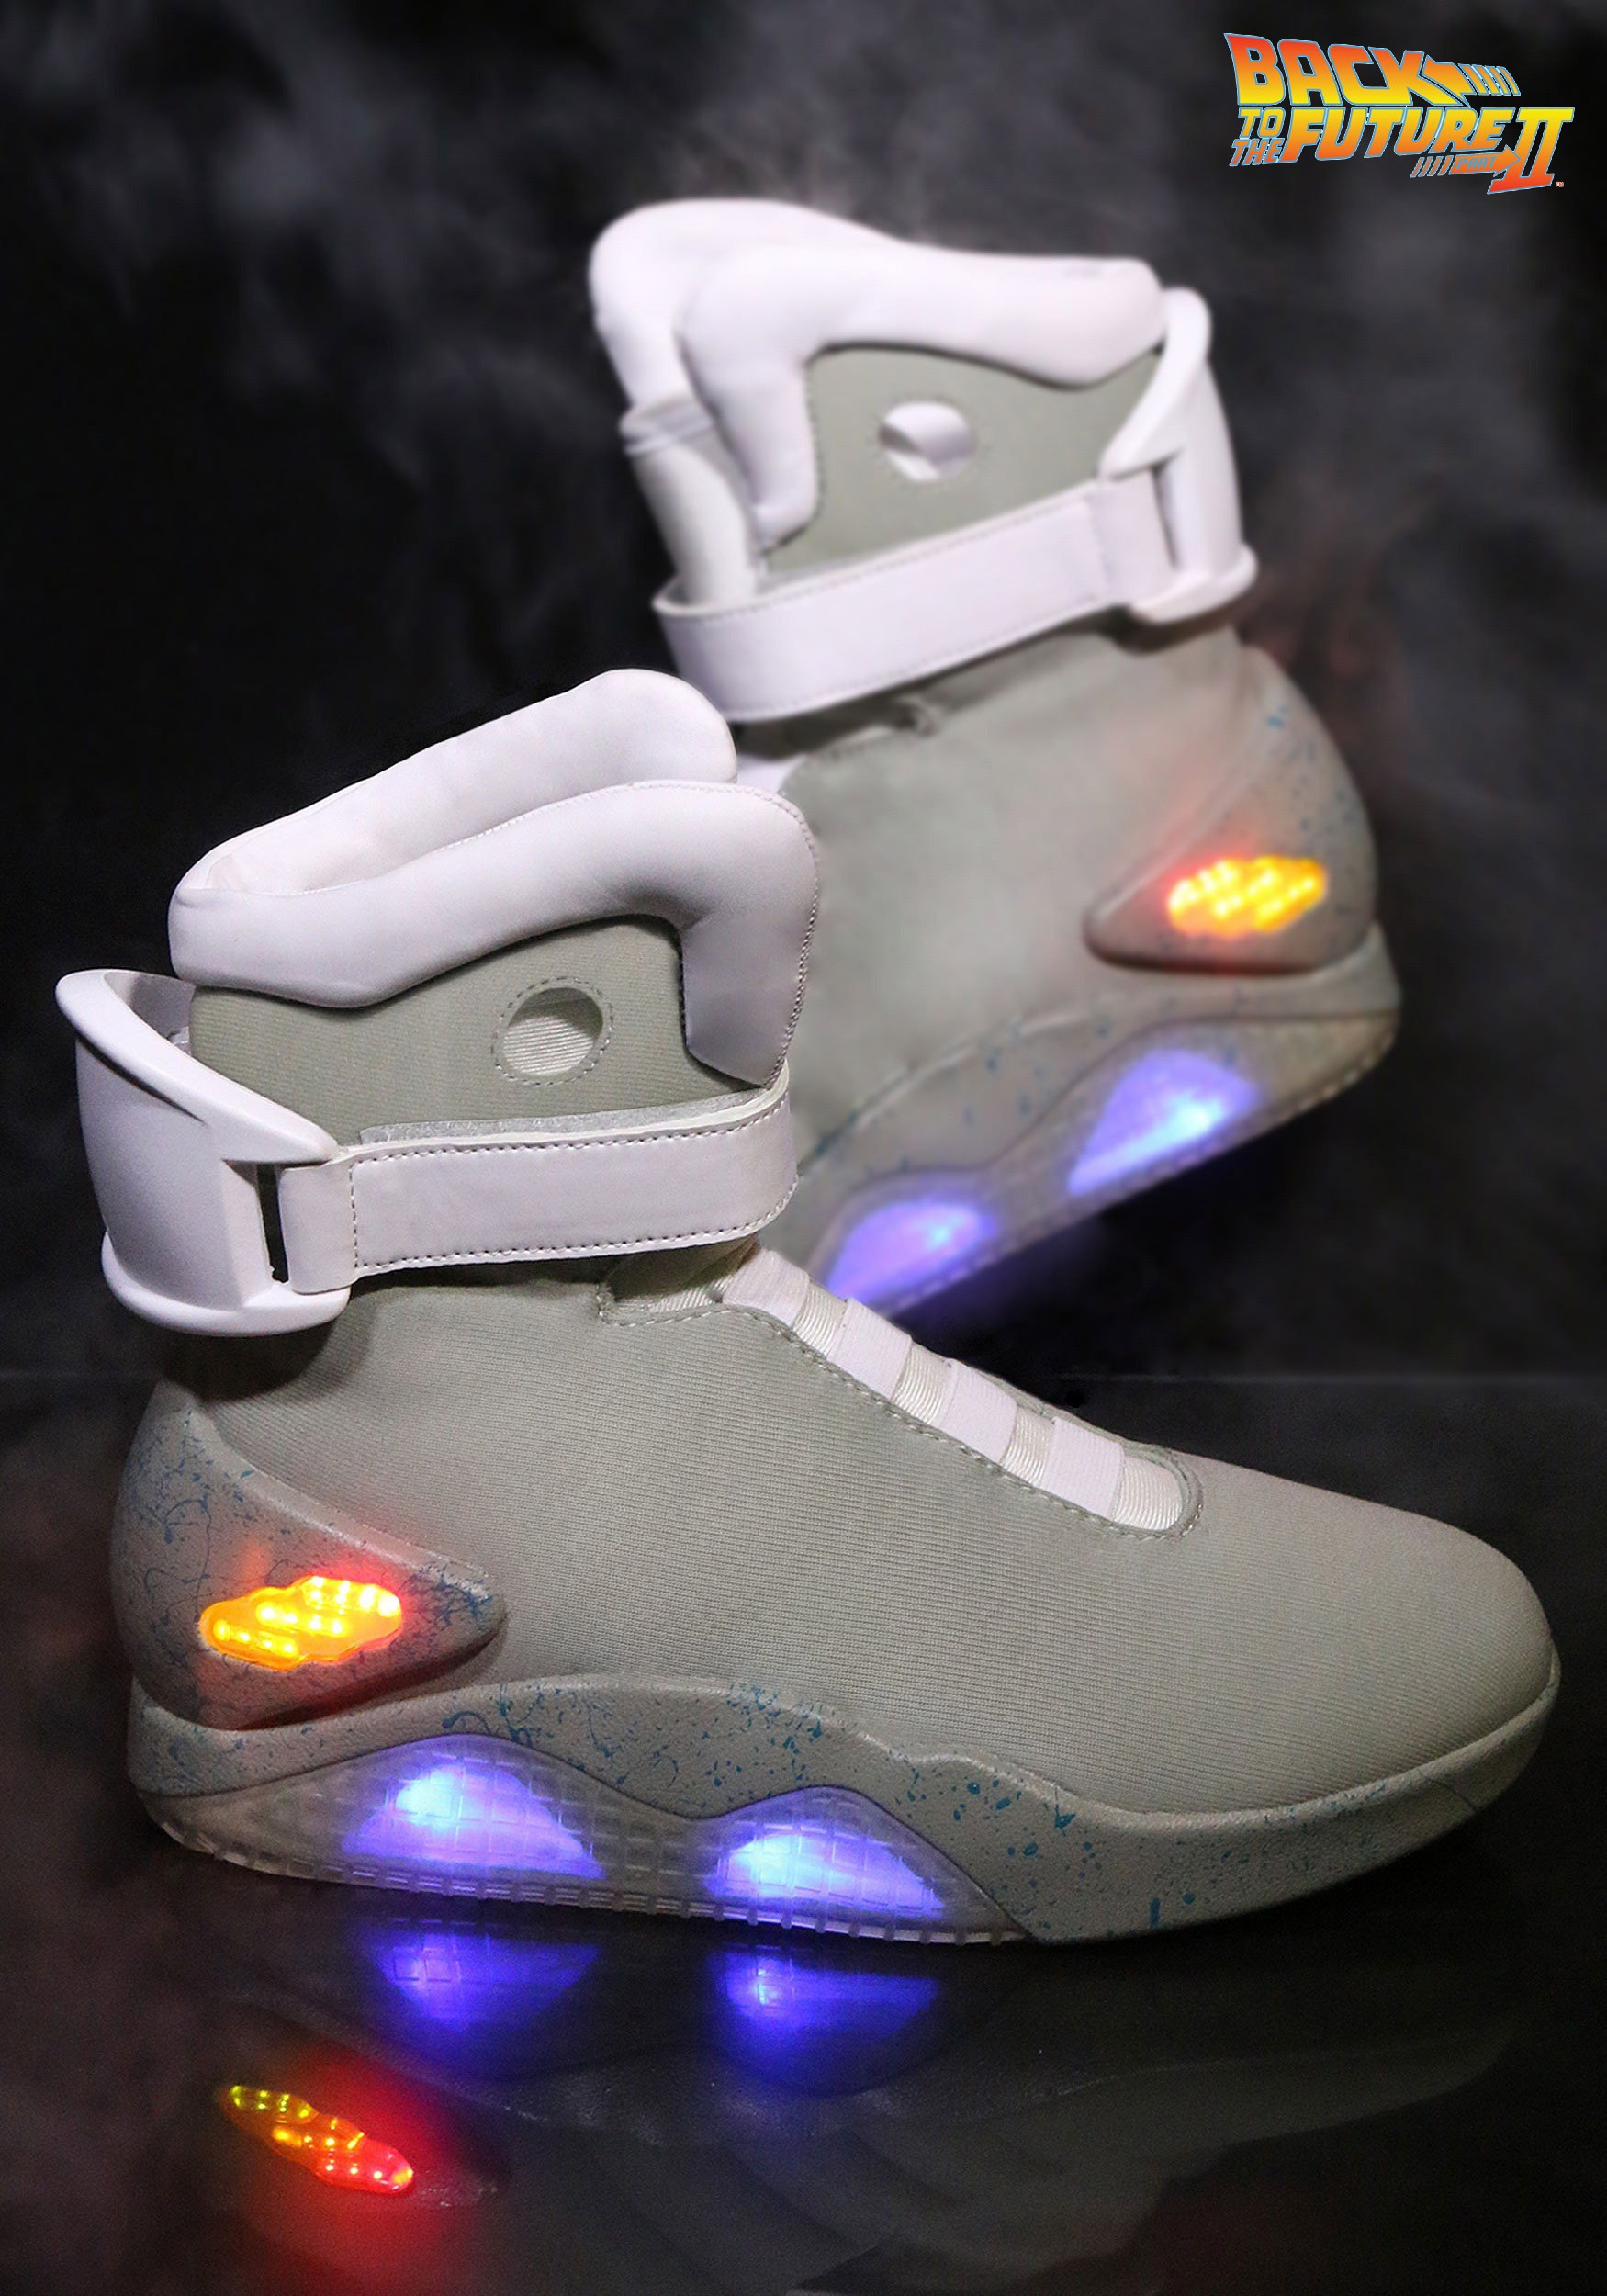 back-to-the-future-2-light-up-shoes.jpg 235c9e4f4